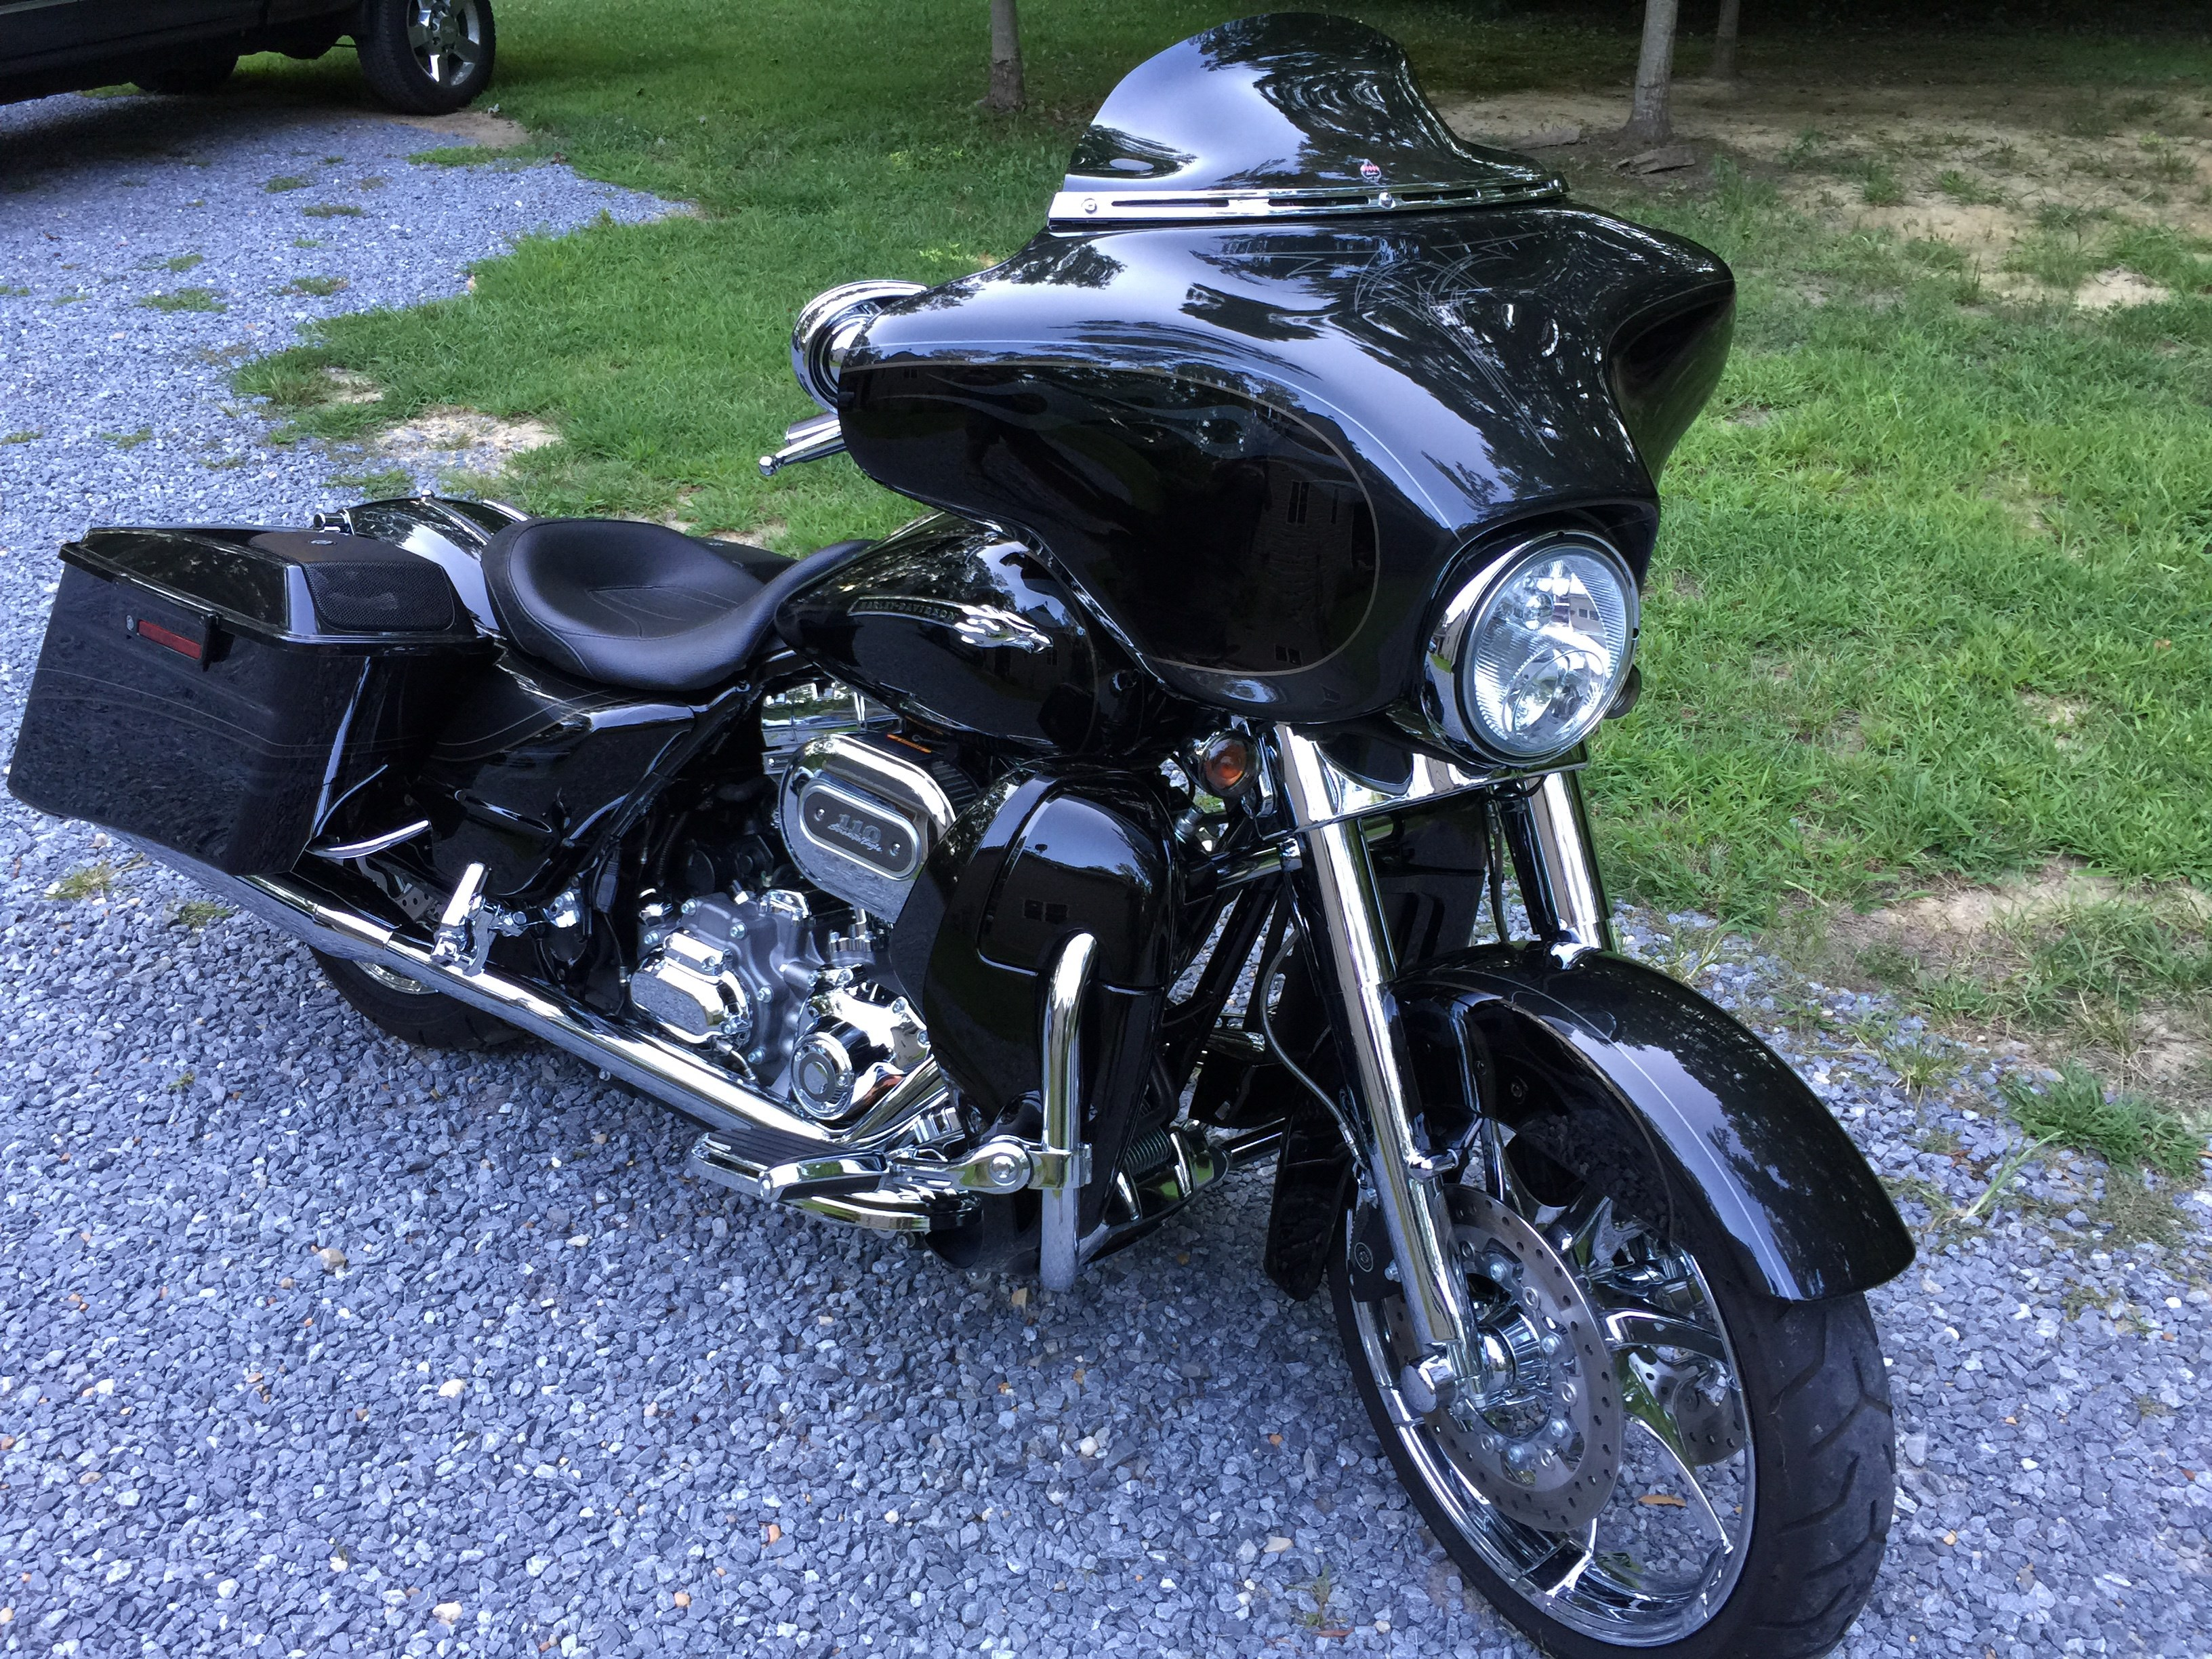 2012 To 2015 Harley Davidson Cvo For Sale Near Cresson Pa 110 2014 Fxdl Wiring Diagram Fuel Bikes Page 1 Chopperexchange